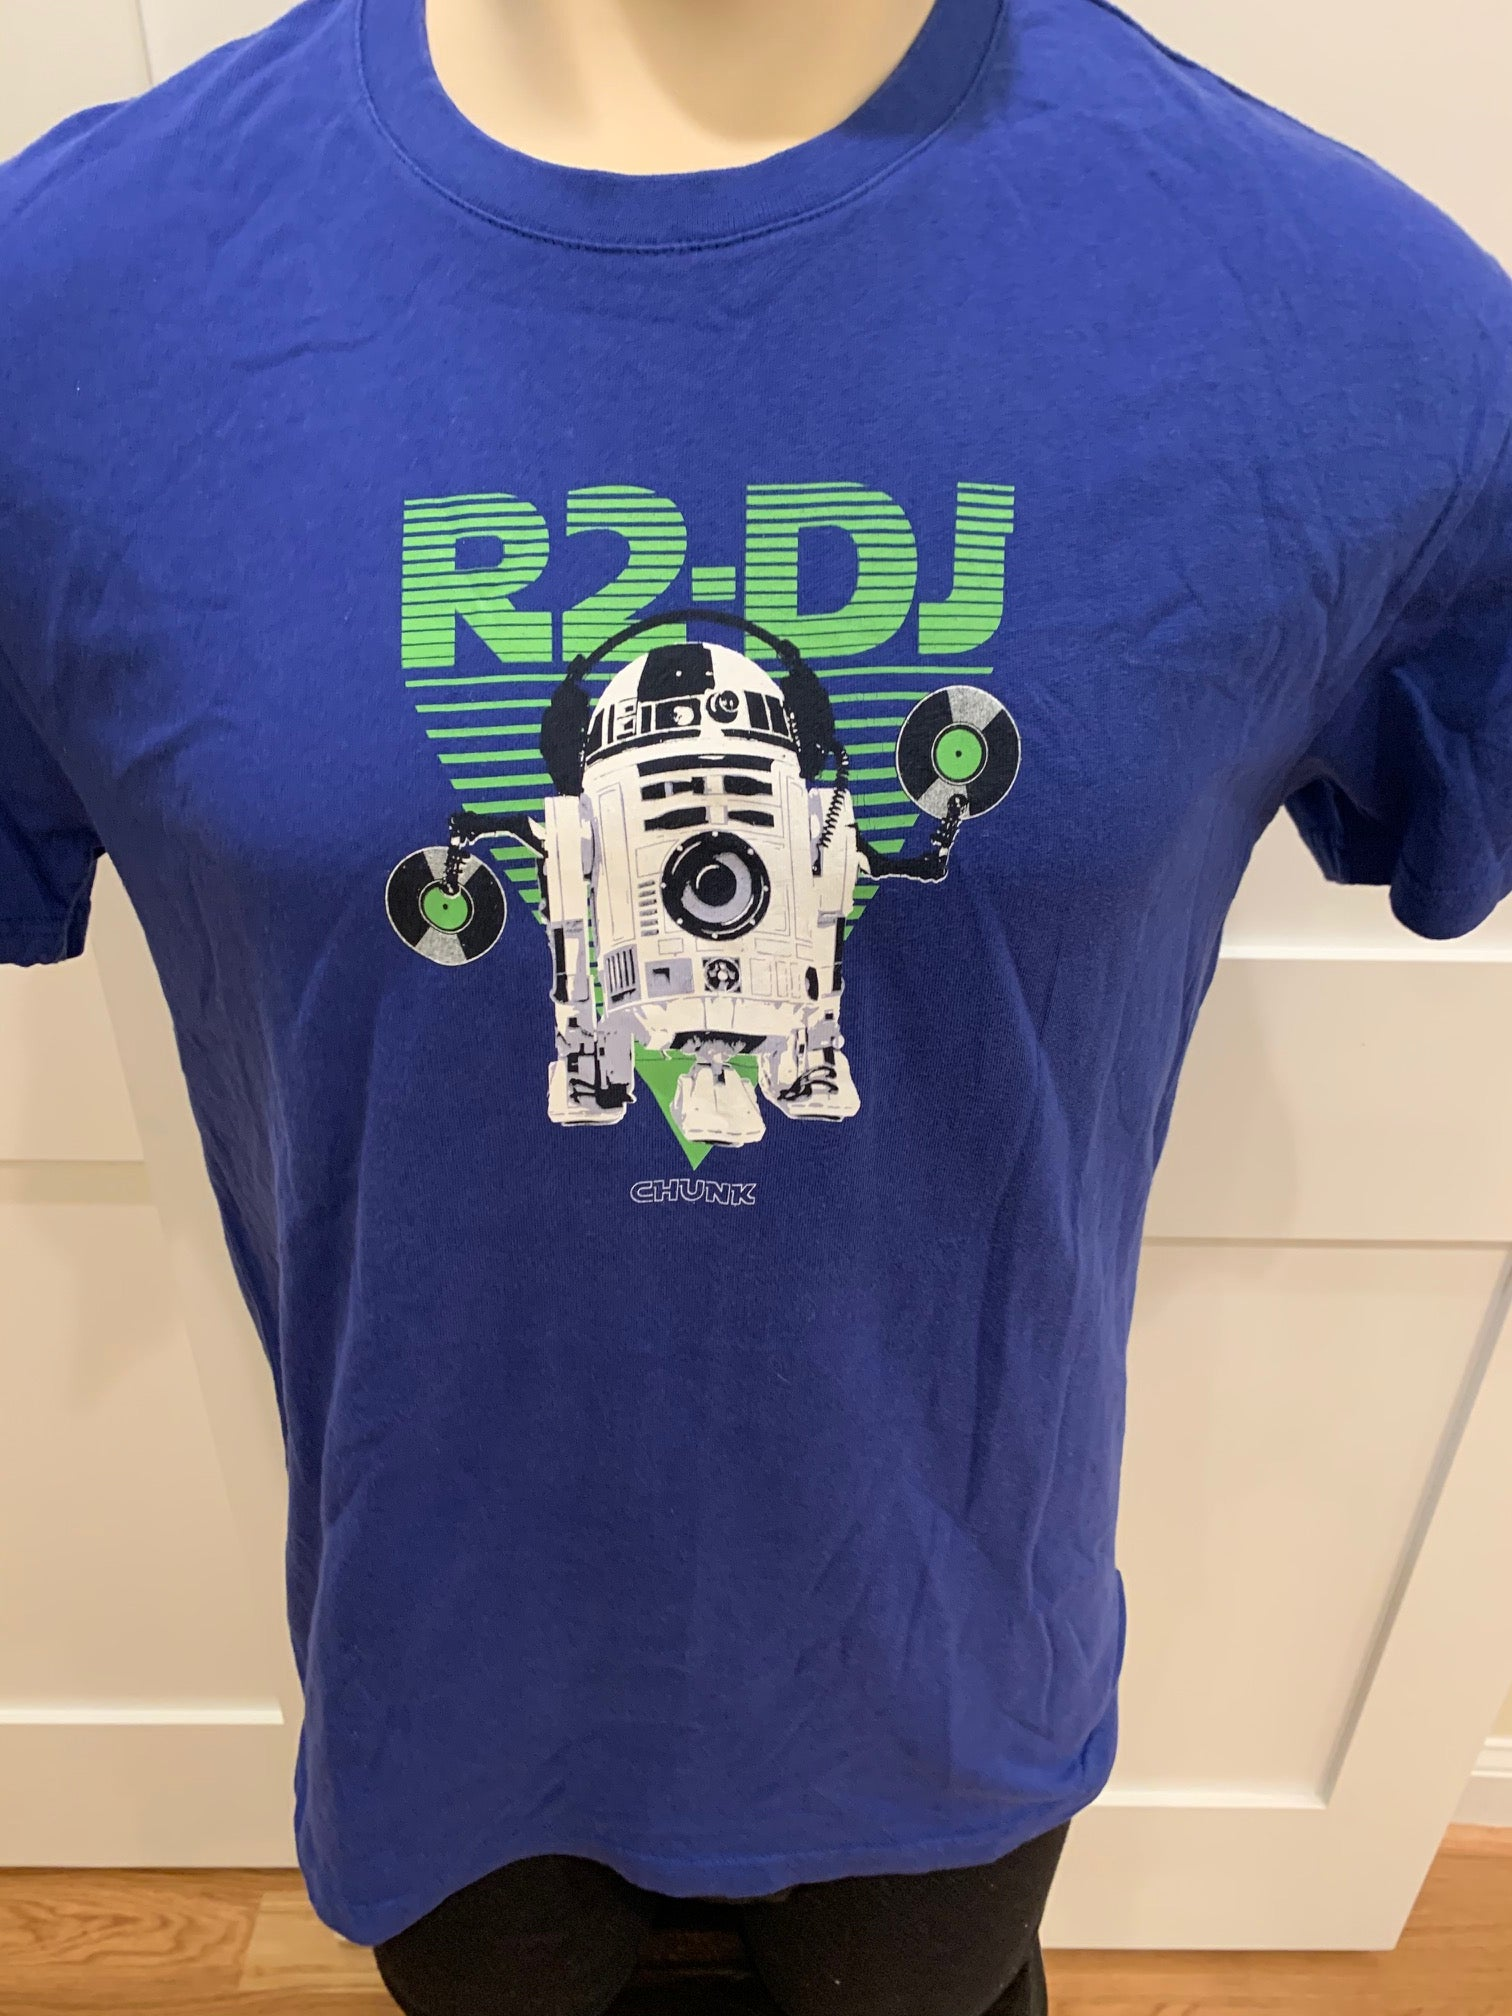 R2 DJ Blue Tee Shirt - Medium